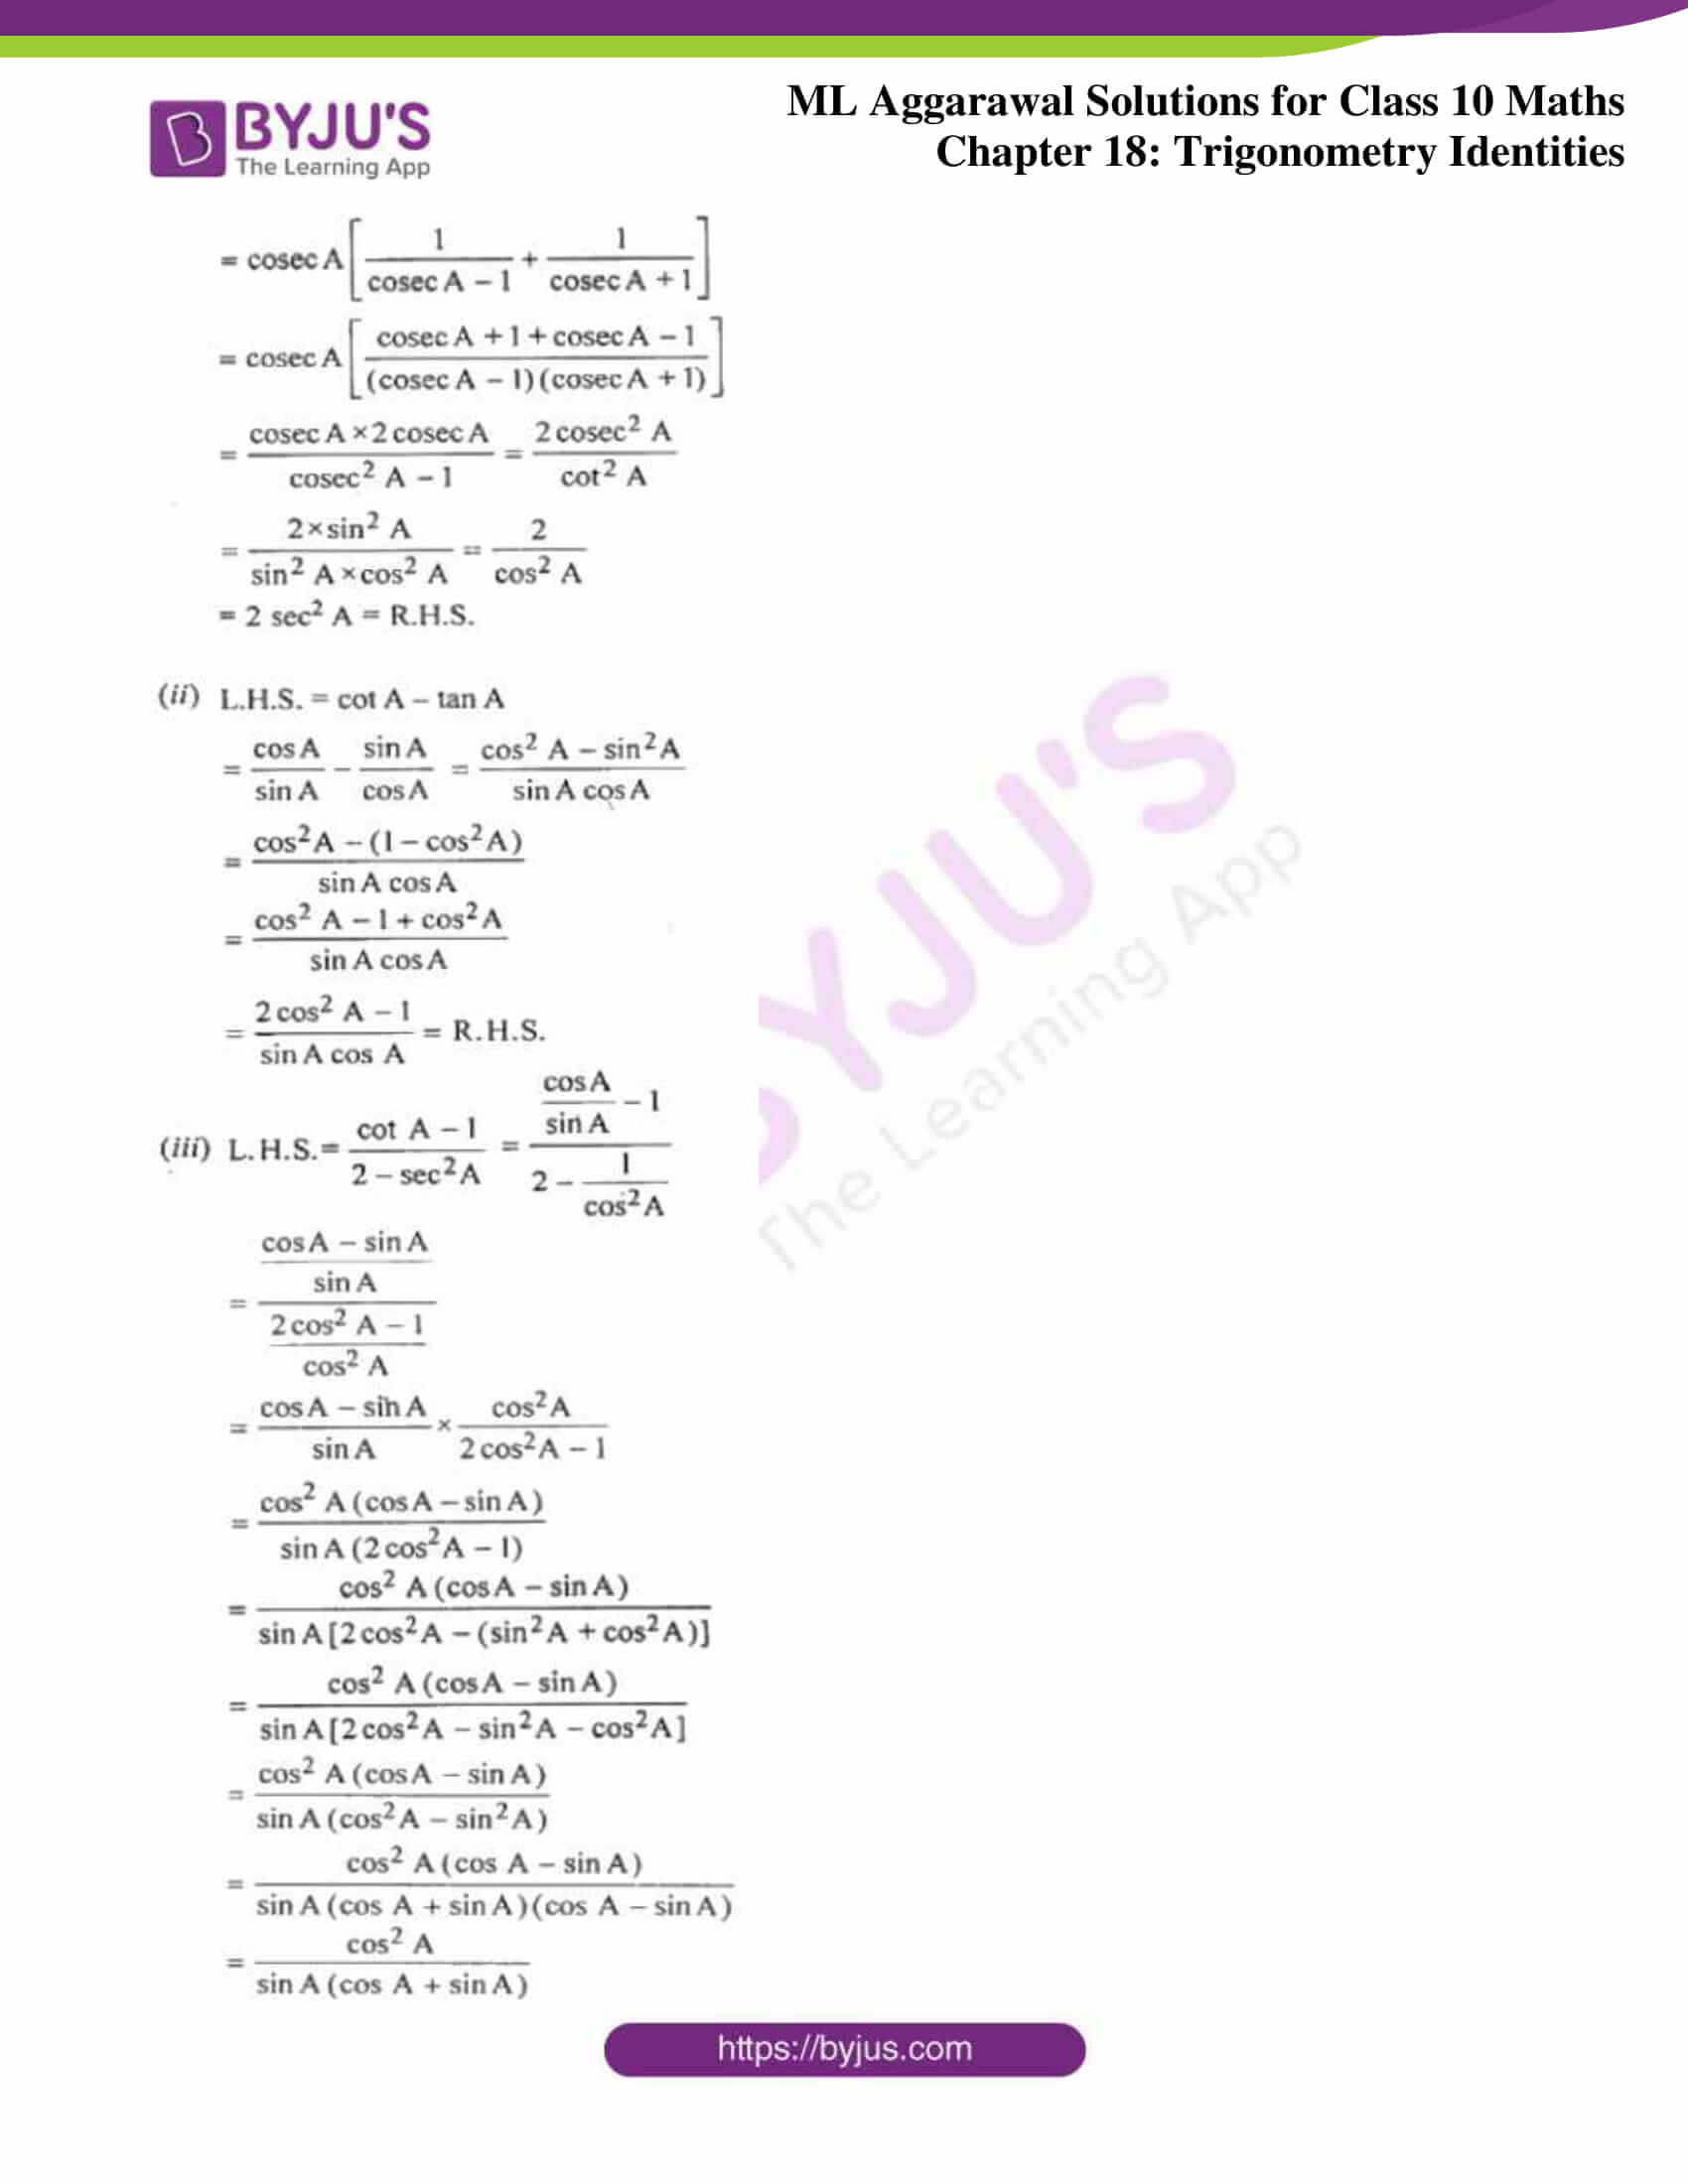 ml aggarwal solutions for class 10 maths chapter 18 12